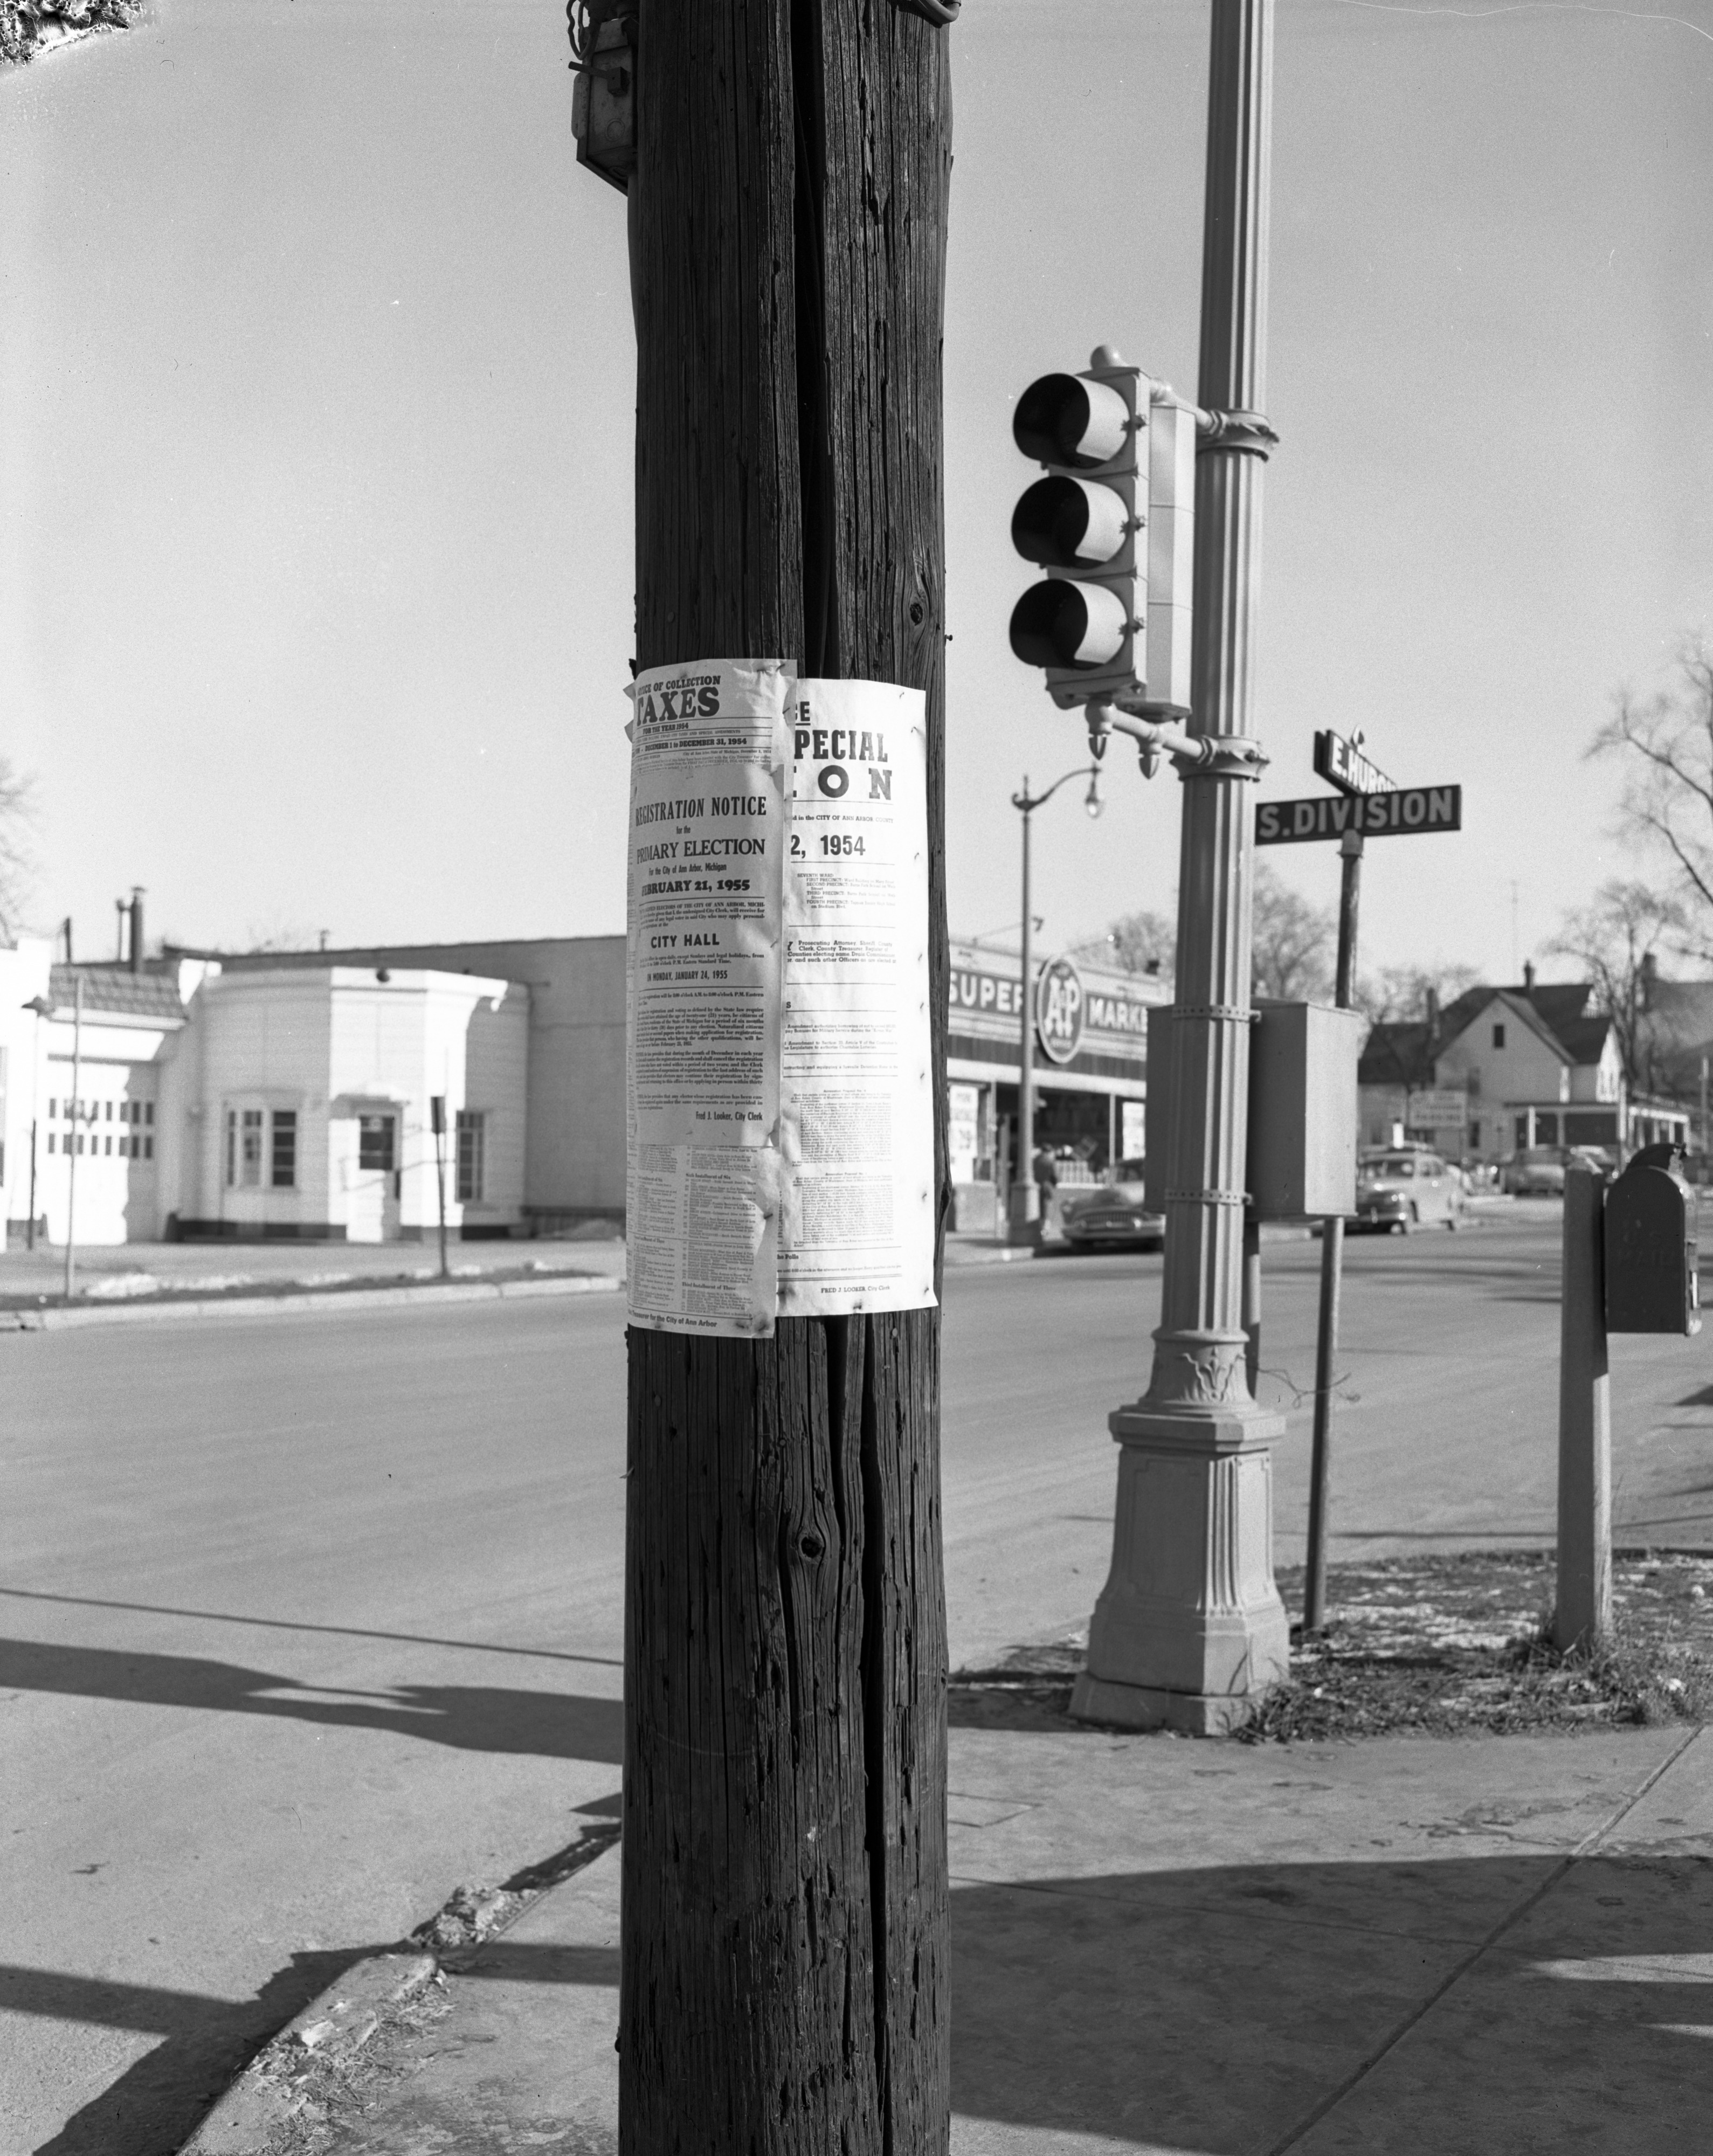 City notices on telephone pole, January 1955 image